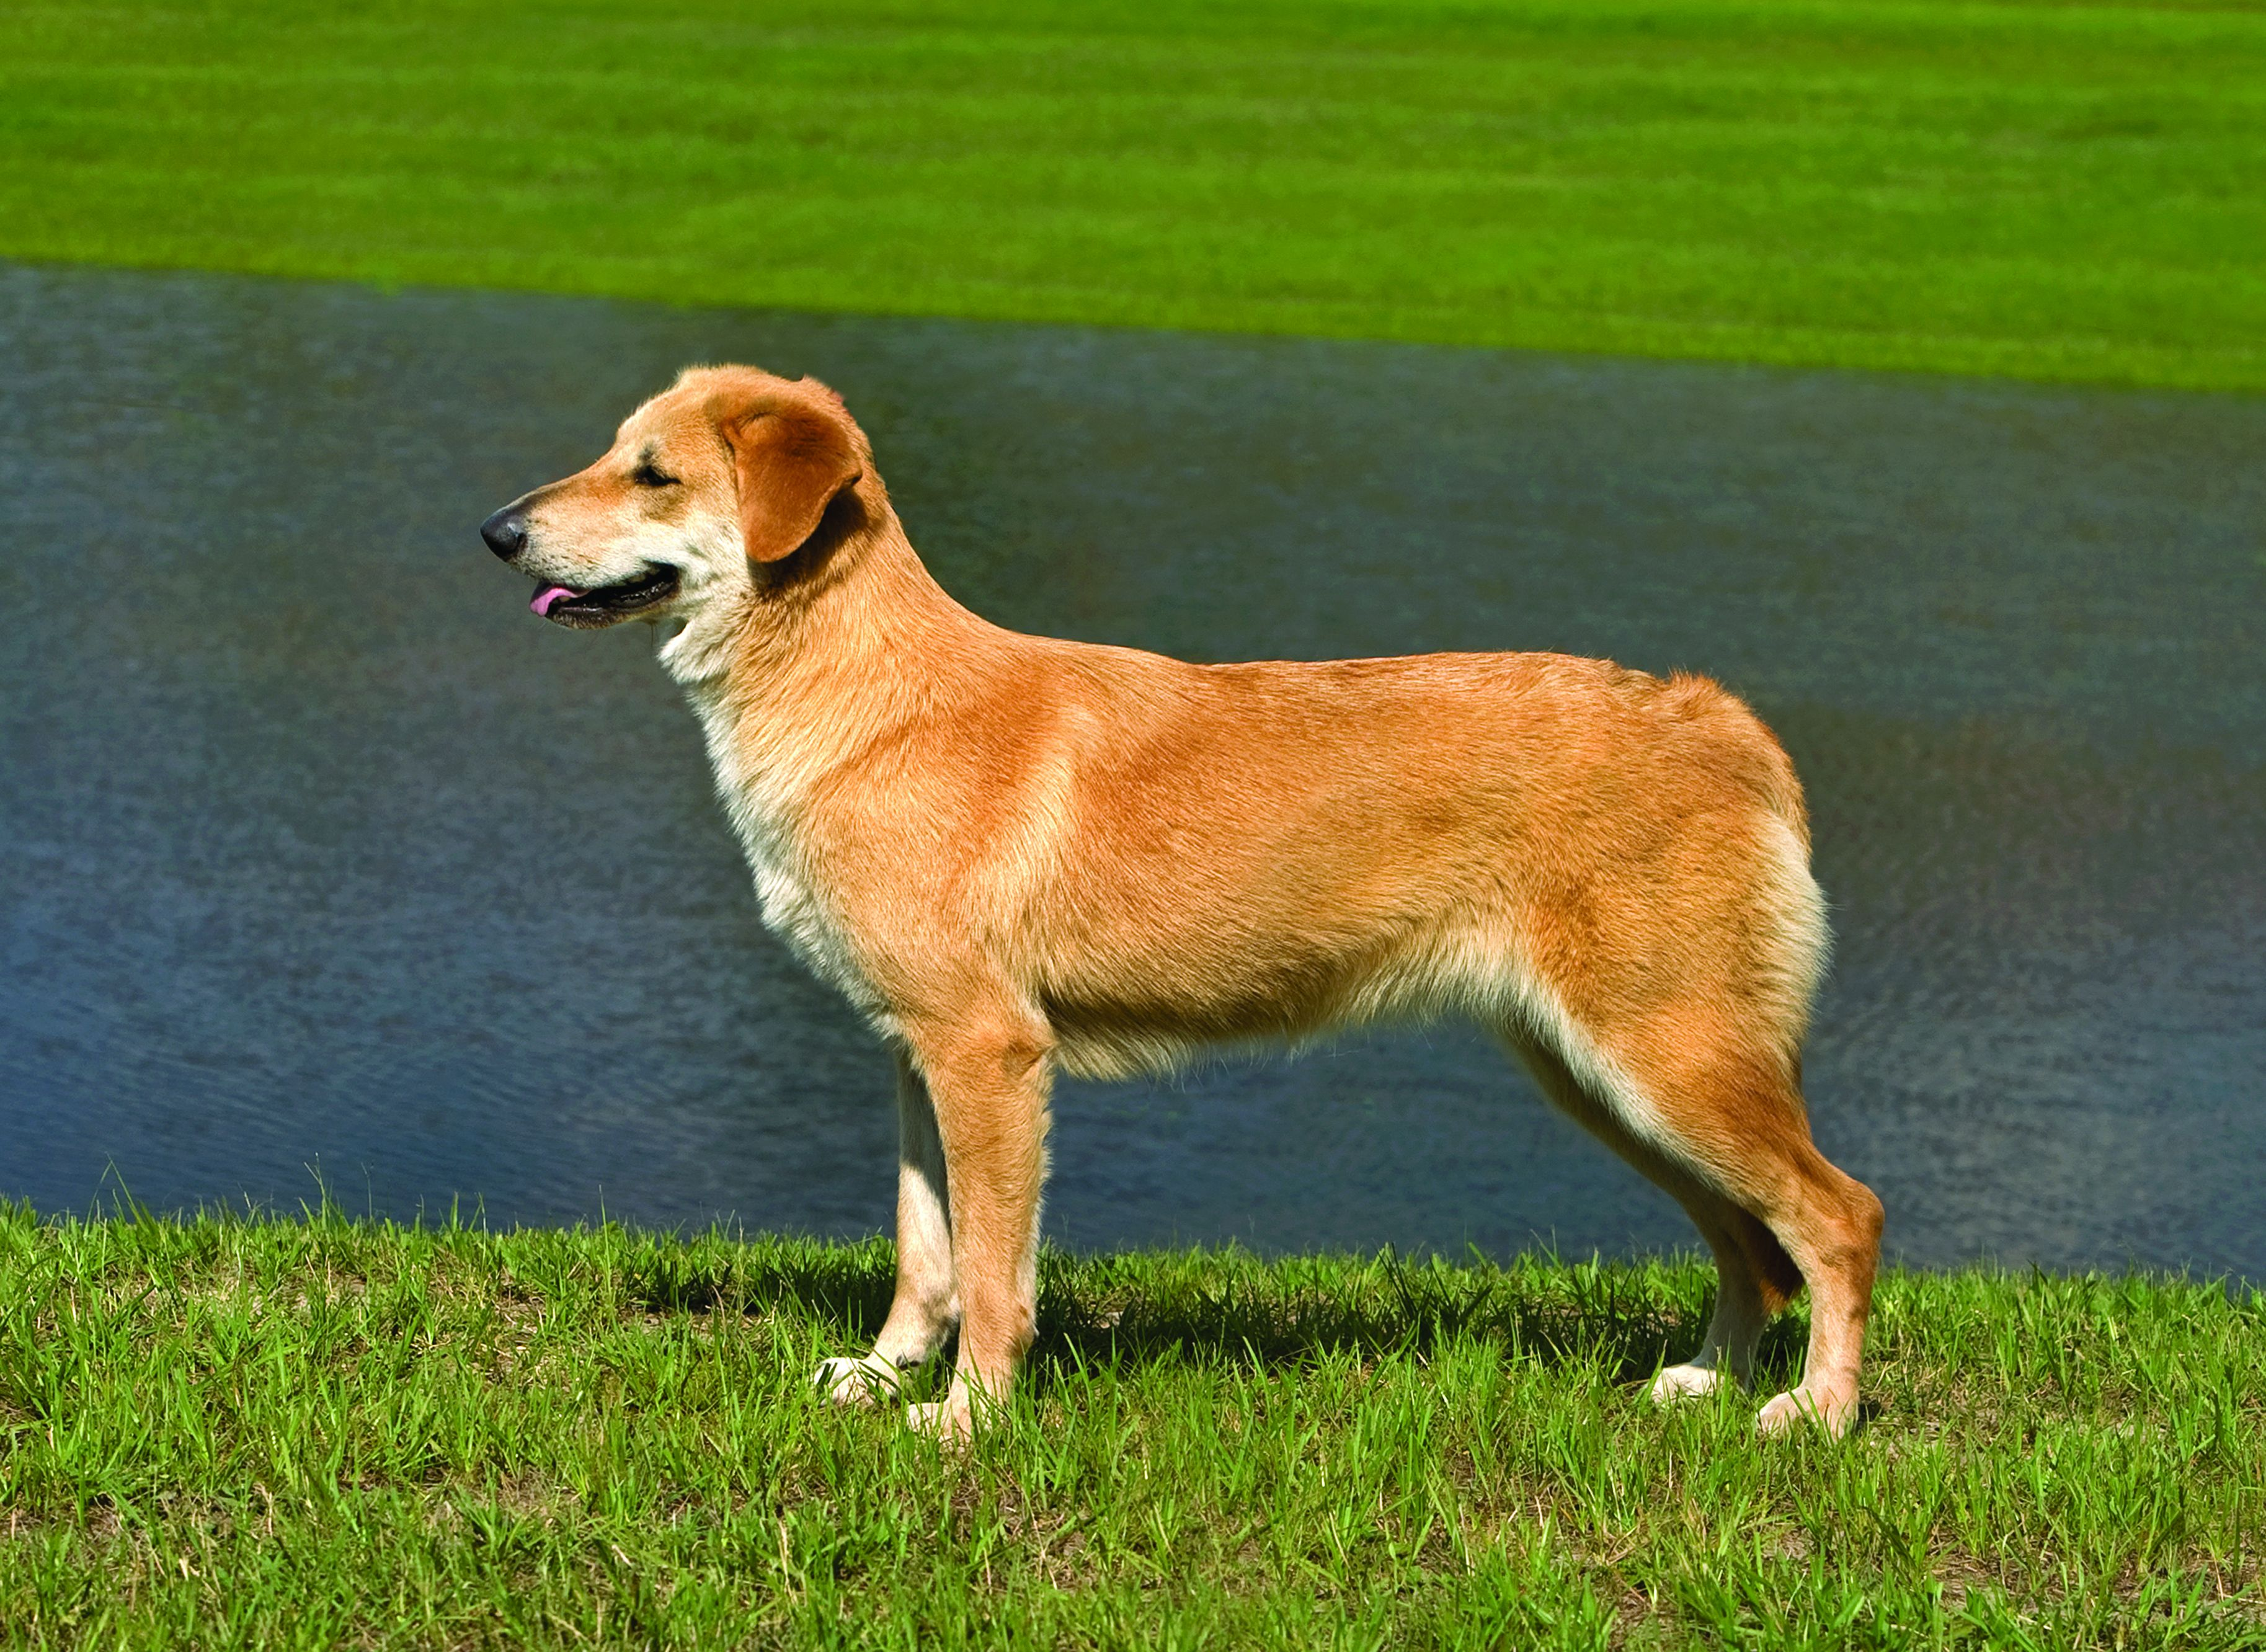 30 Top Medium Dog Breeds For Apartment Friendly Lifestyle ...